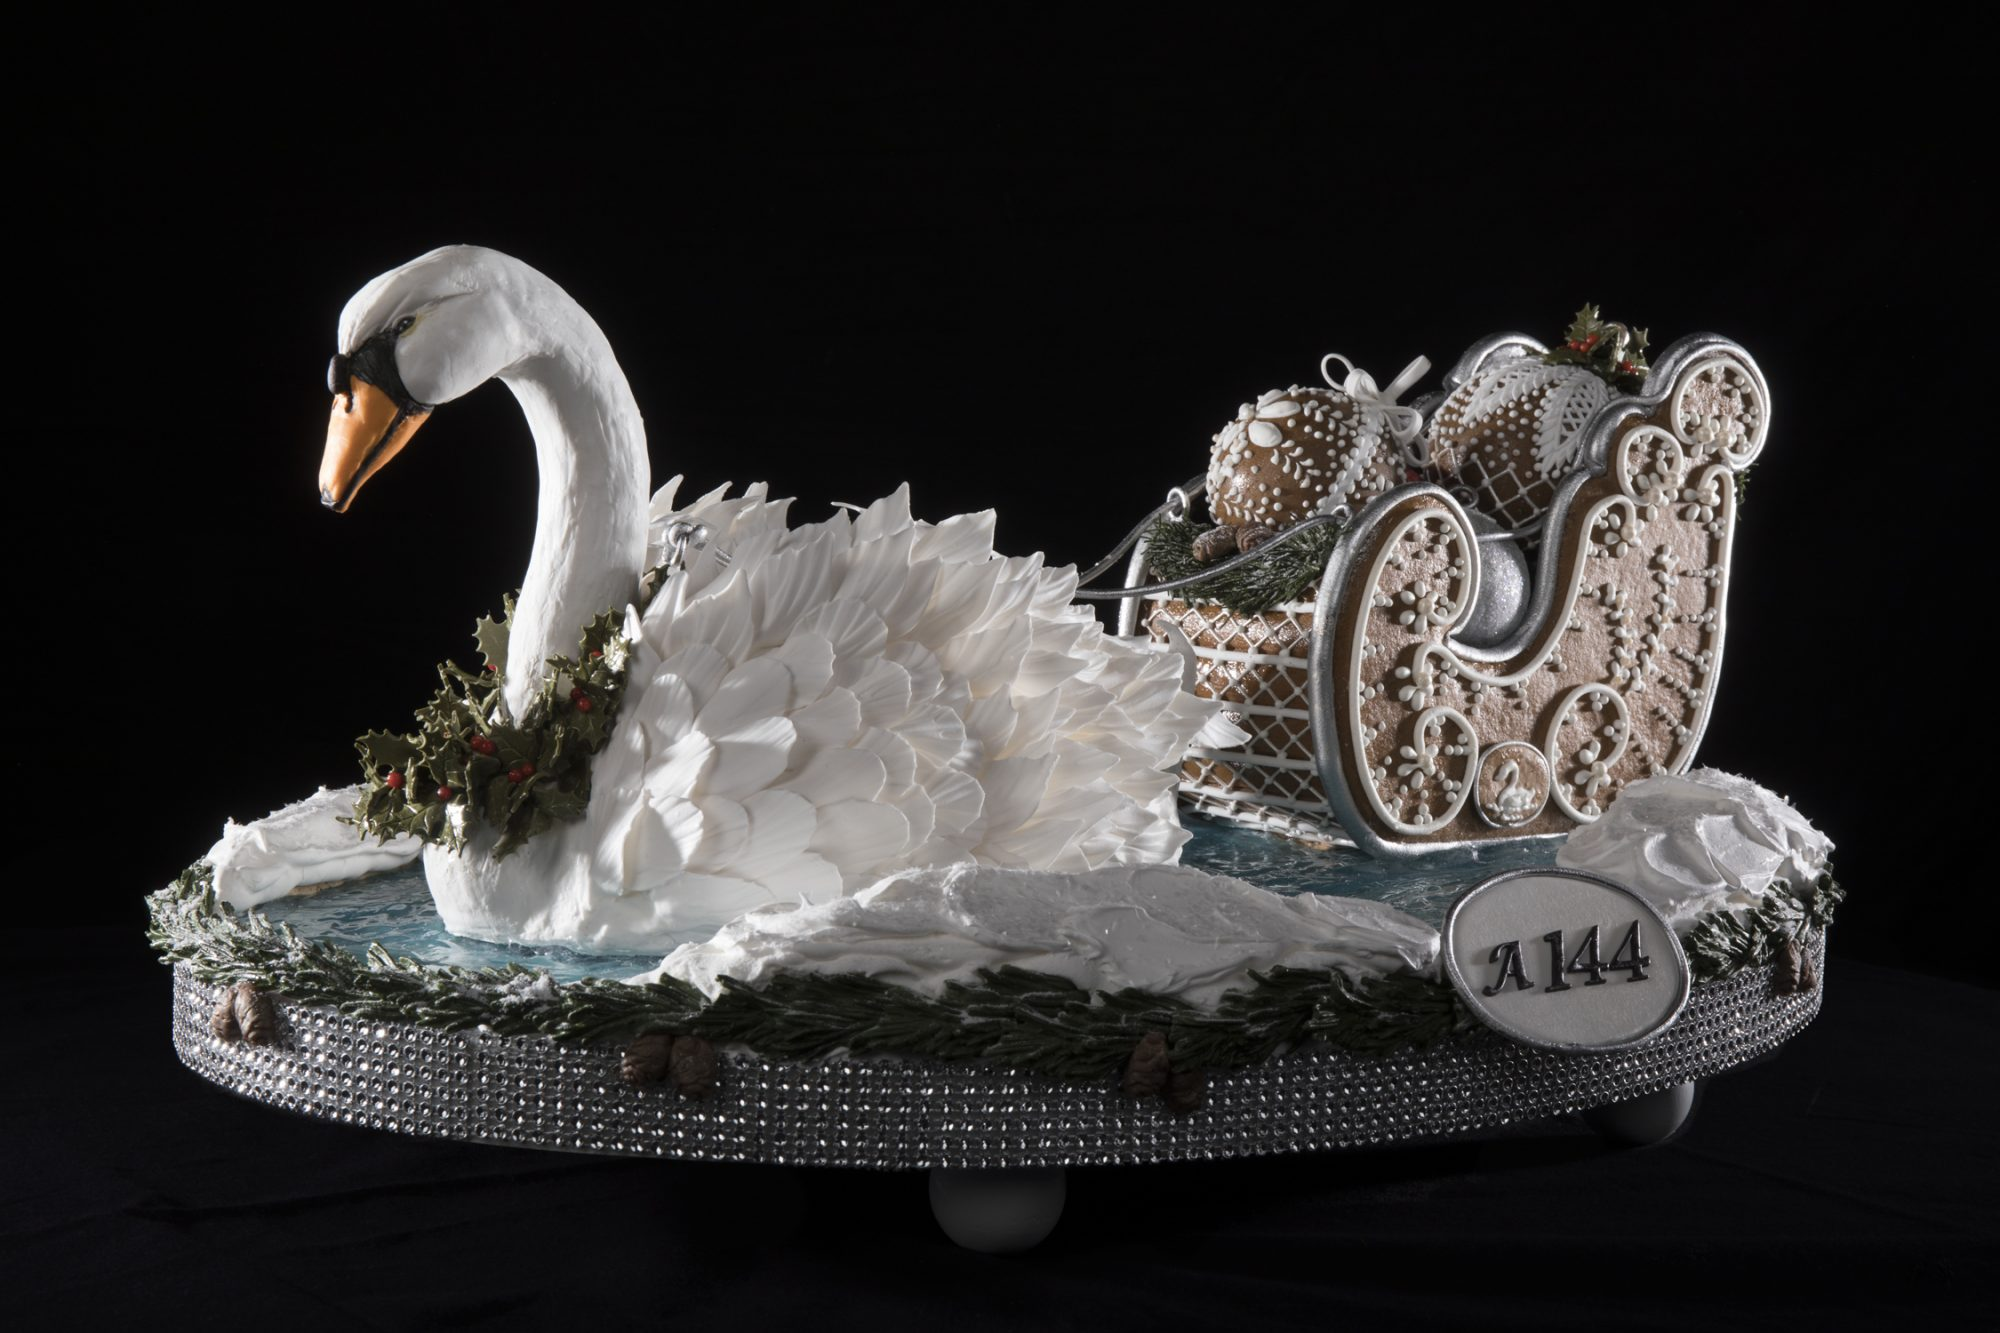 Swan Lake Gingerbread House Competition